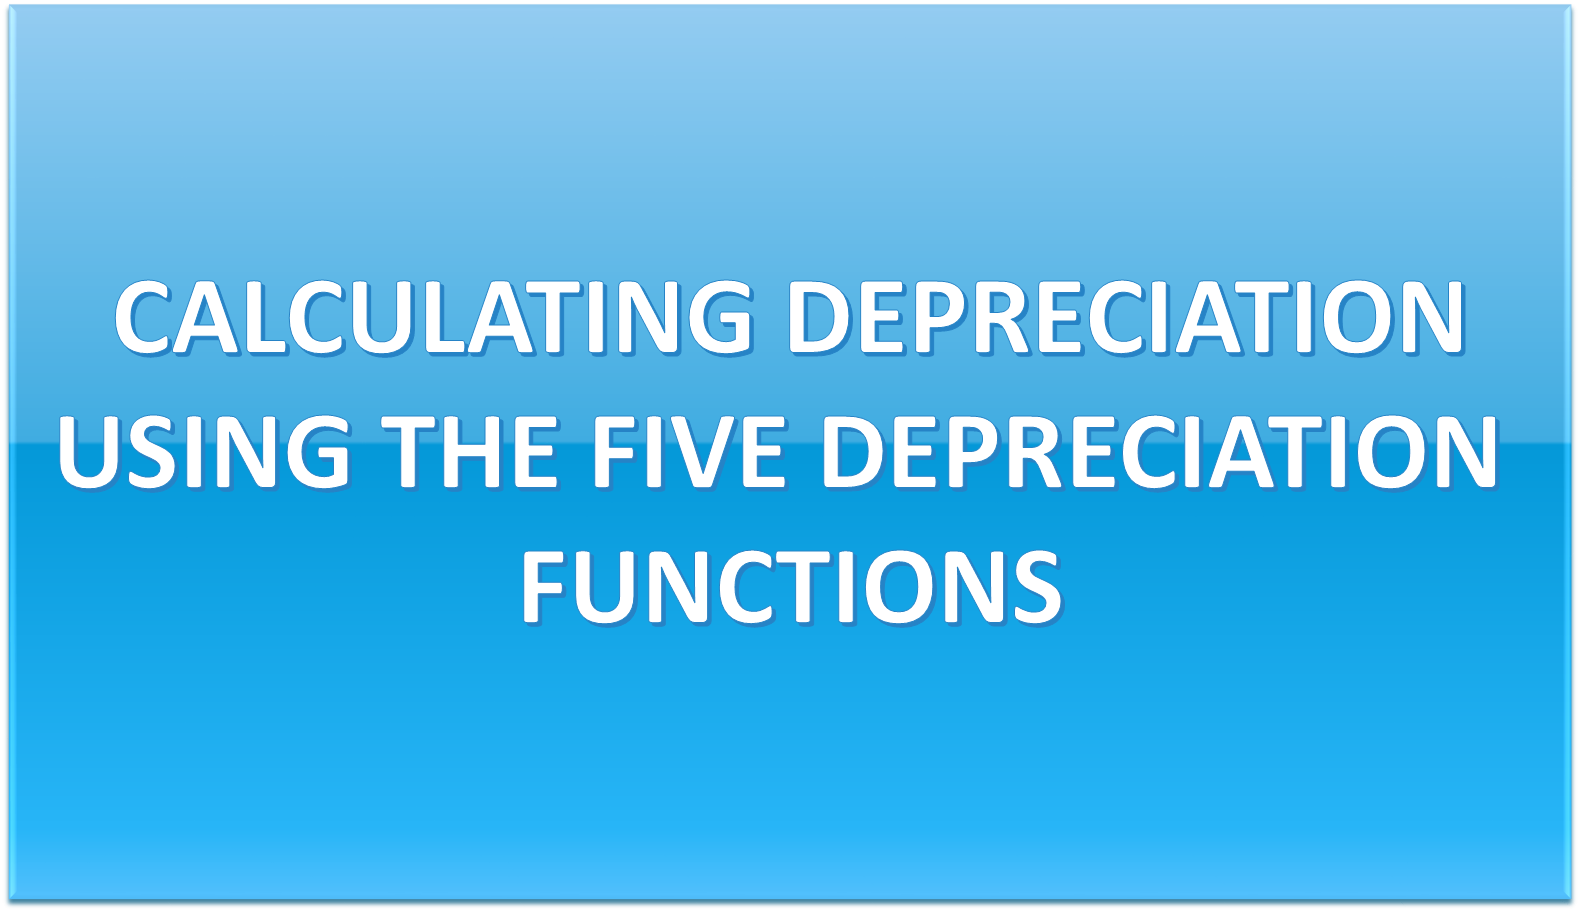 How To Calculate Depreciation In Excel With 5 Functions?